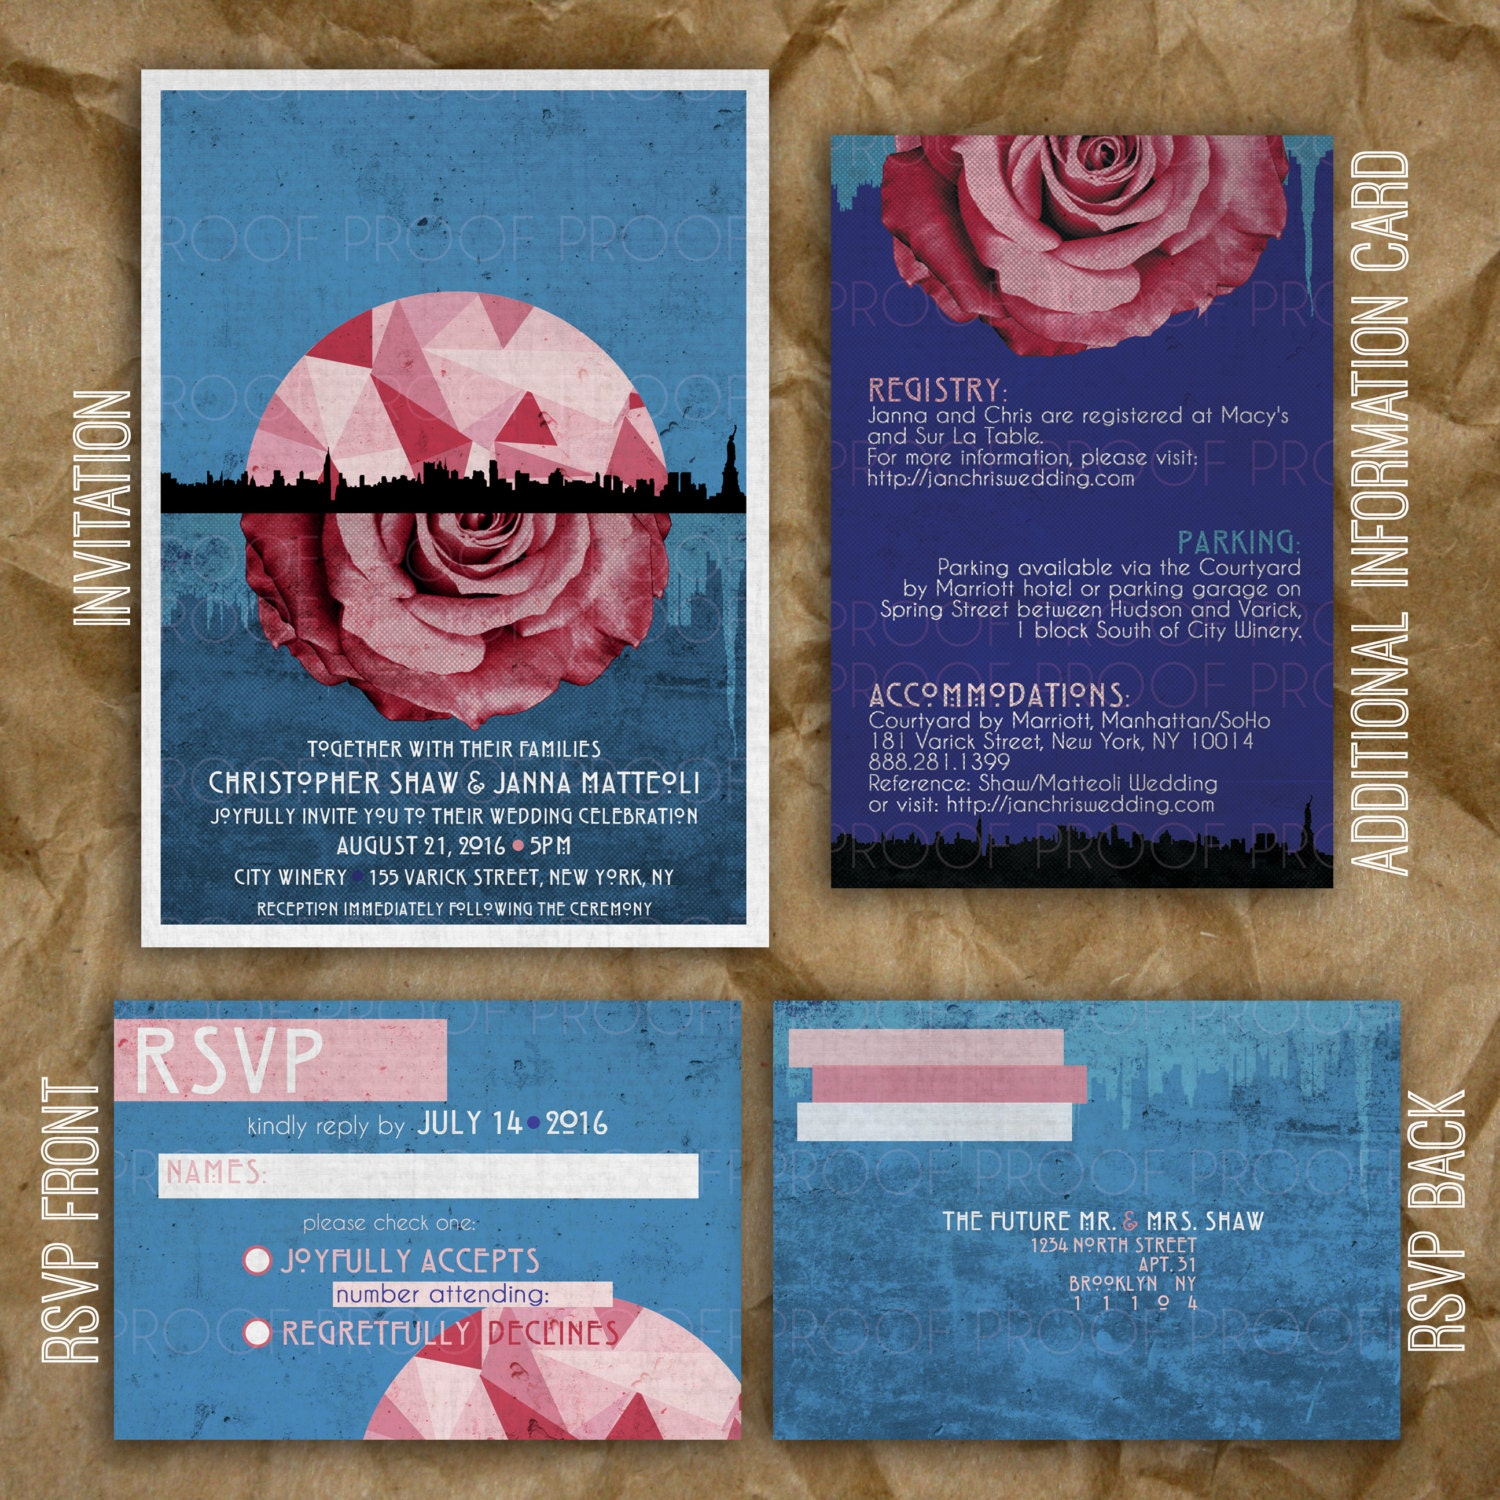 Personalized Skyline Wedding Invitations: Concert Poster Wedding Invitations // Skyline // Abstract